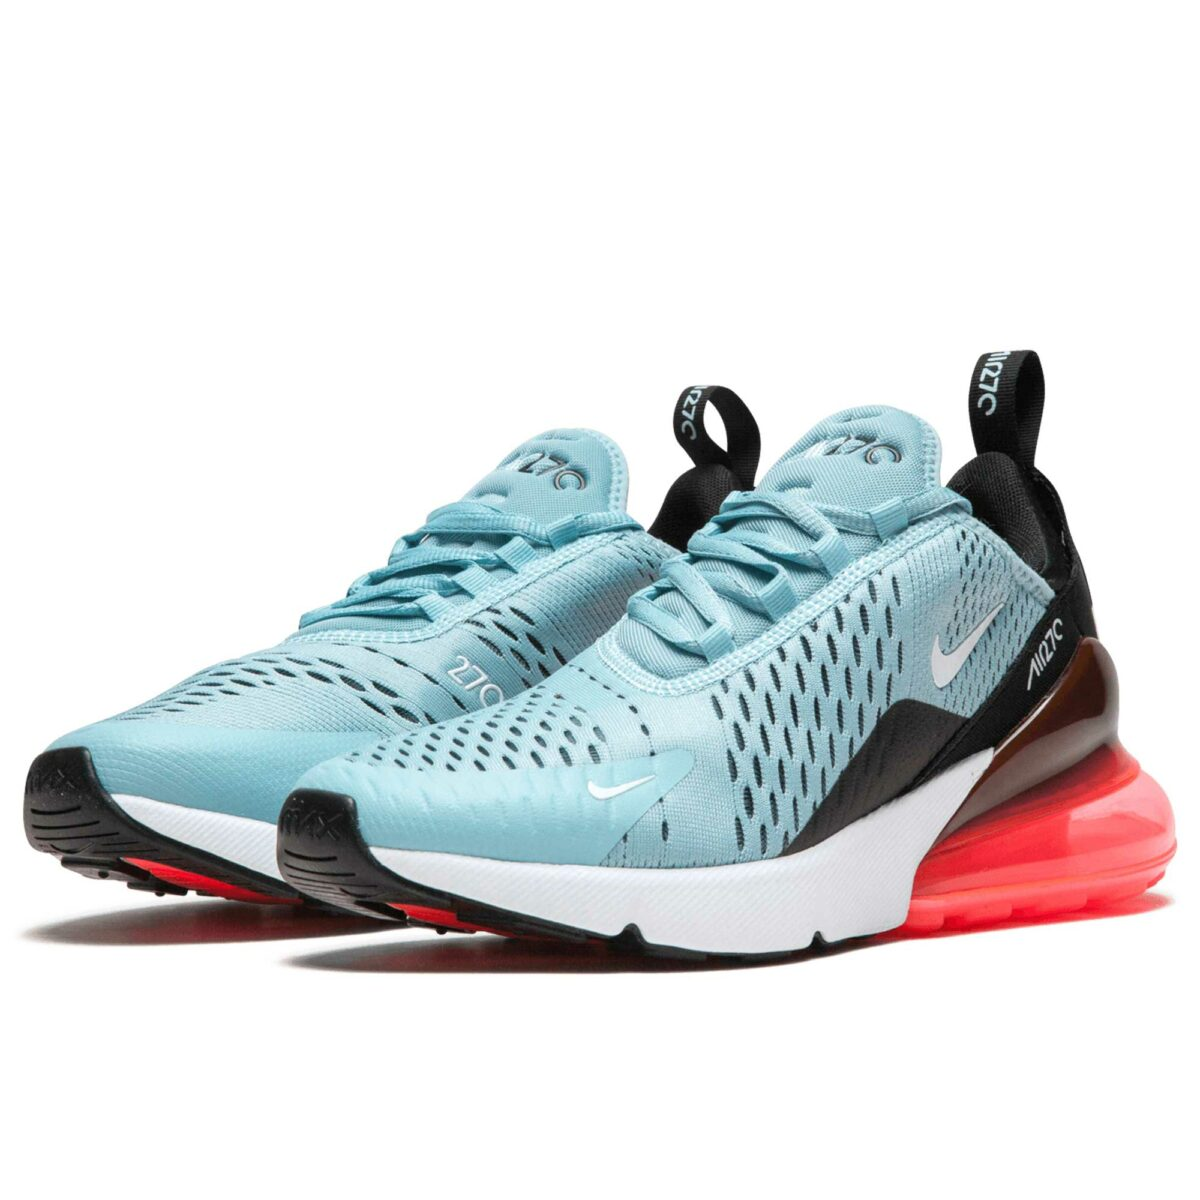 nike air max 270 ocean bliss AH6789_400 купить